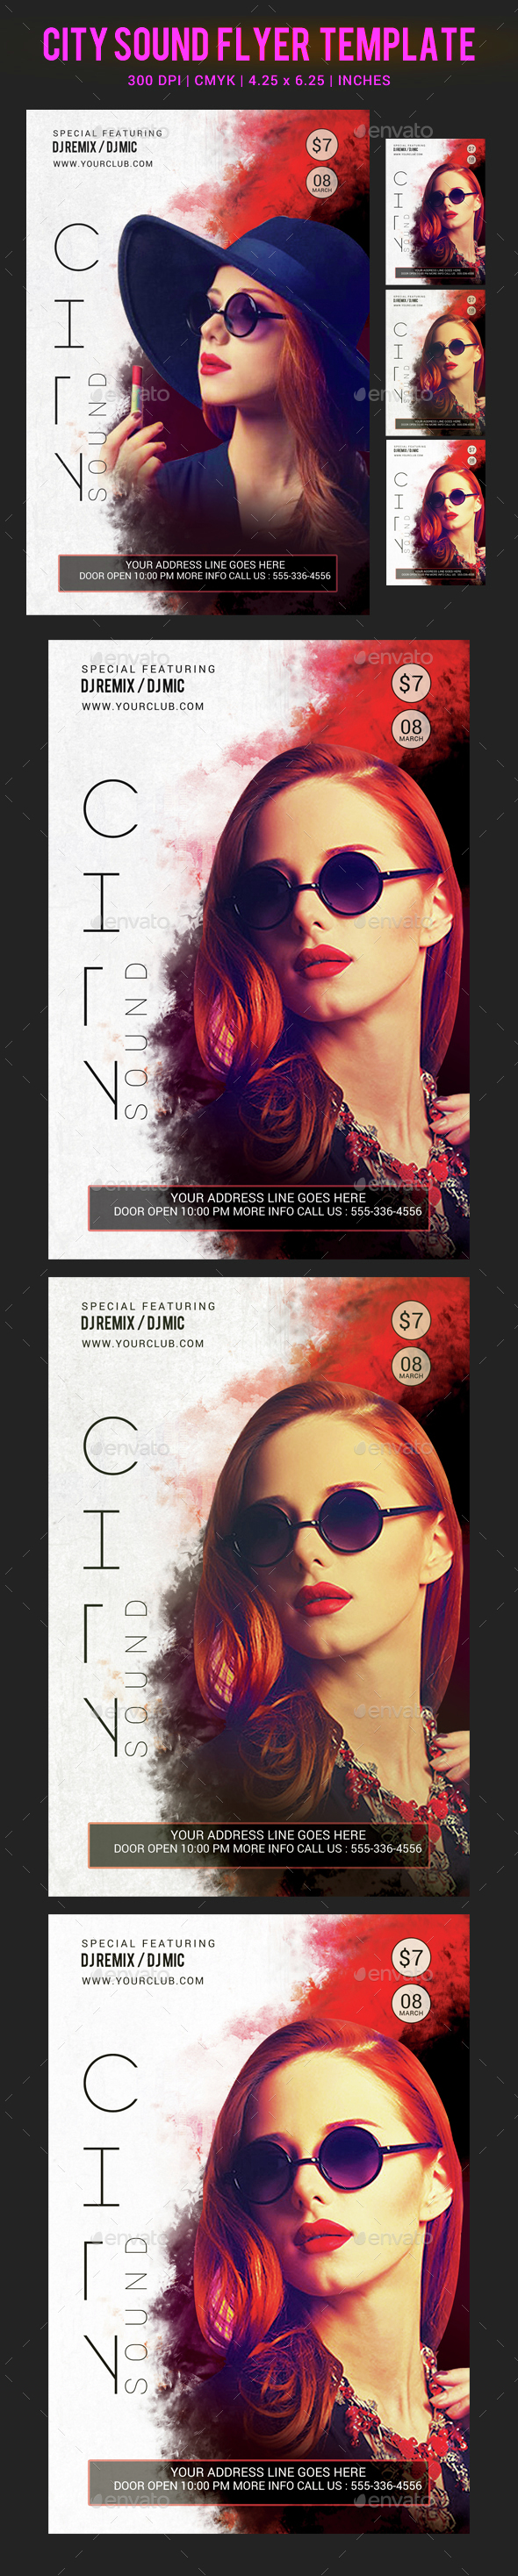 City Sound Party Flyer Template - Clubs & Parties Events